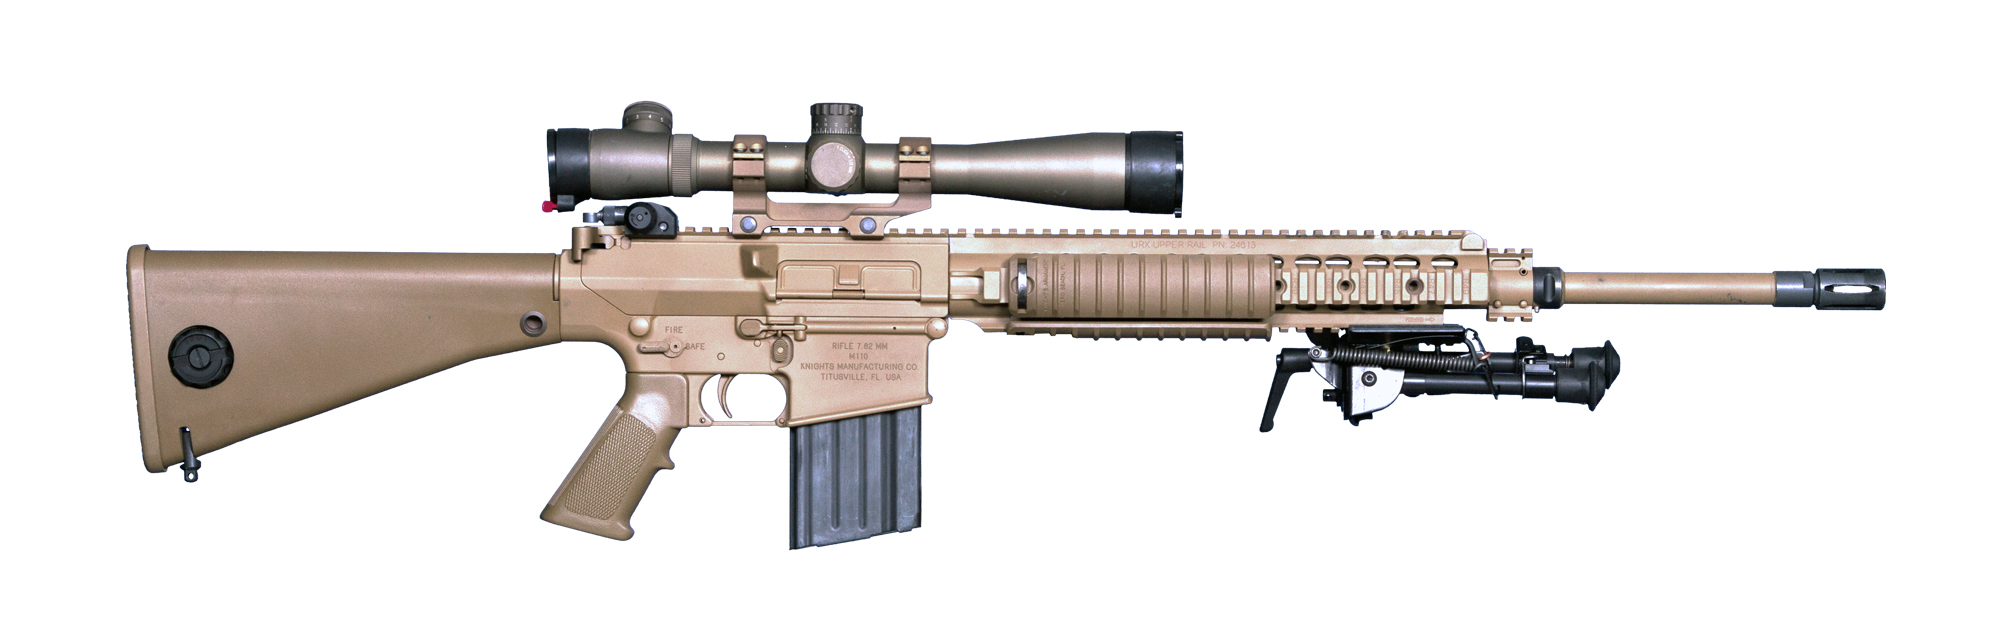 M110 Sniper Rifle Airsoft M110 - Knight's Armame...